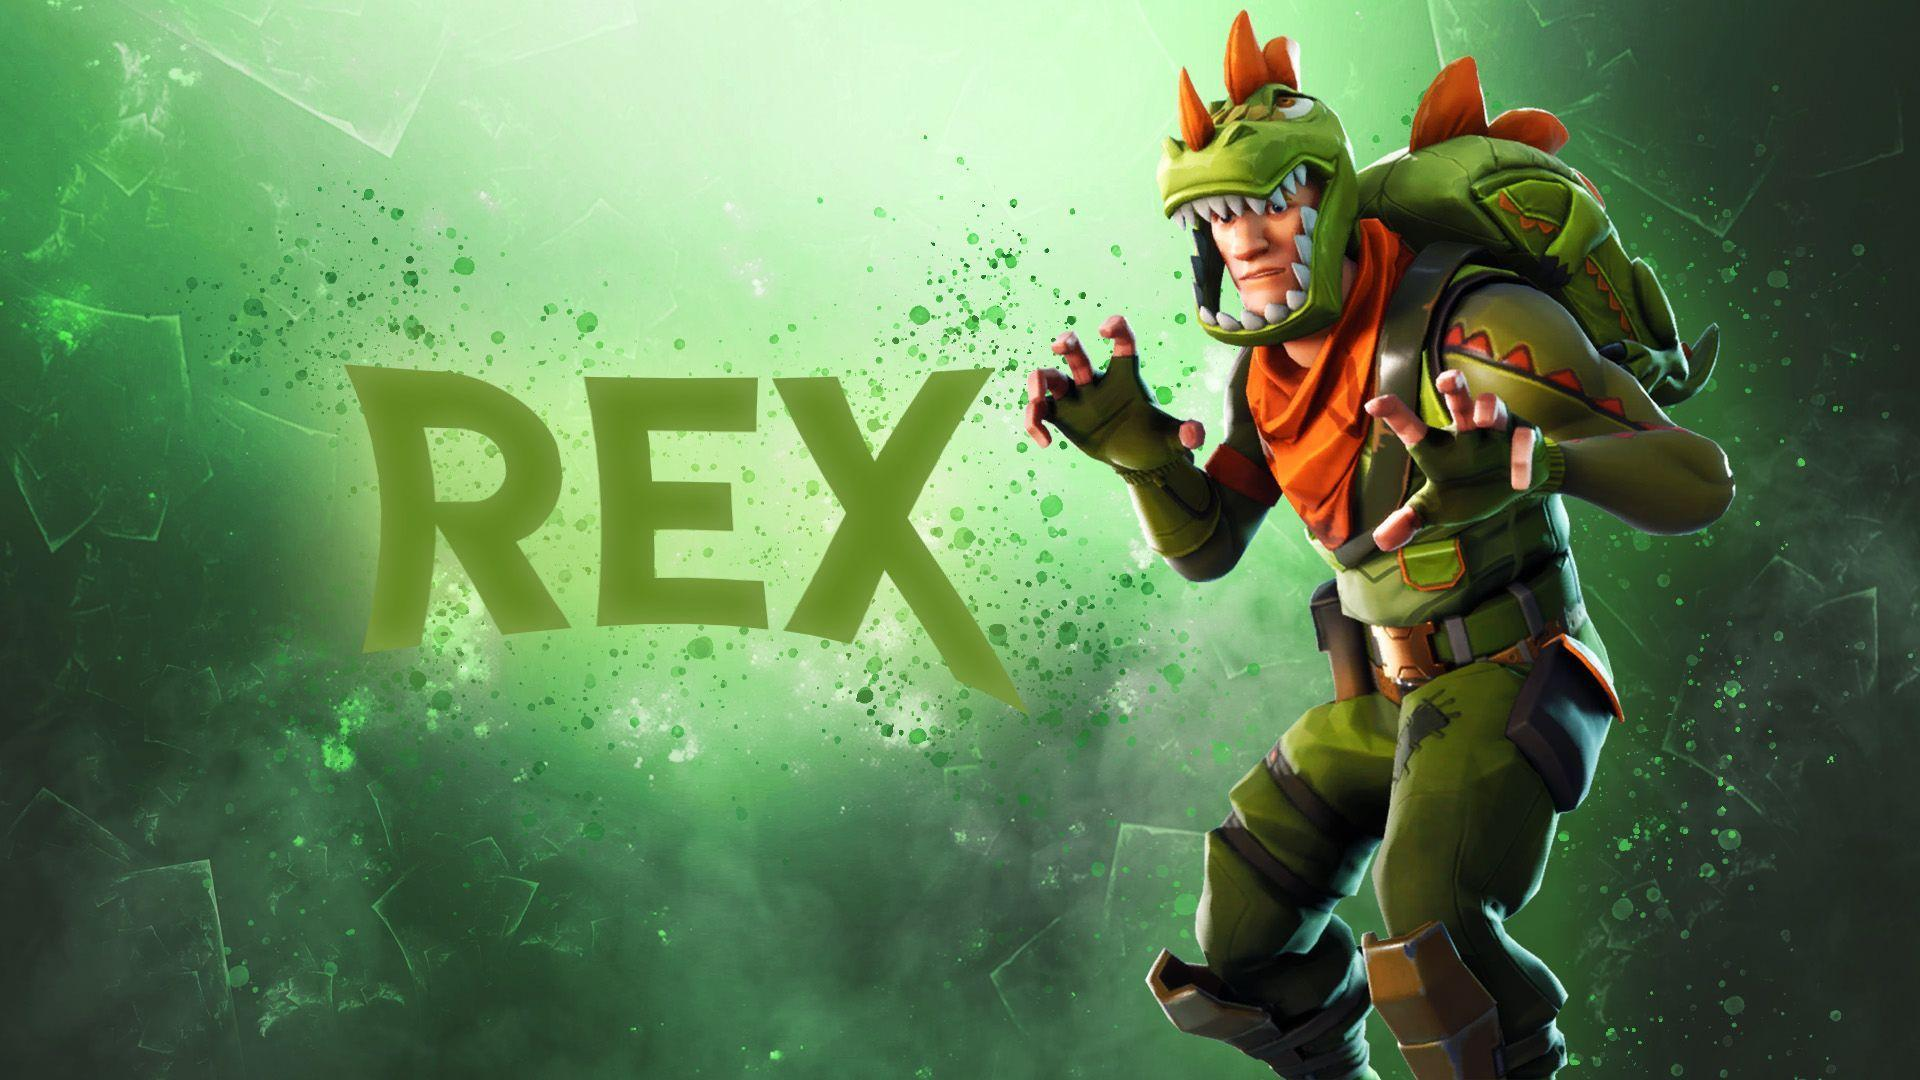 Fortnite Rex Wallpaper | Wallpaper | Pinterest | Wallpaper downloads ...